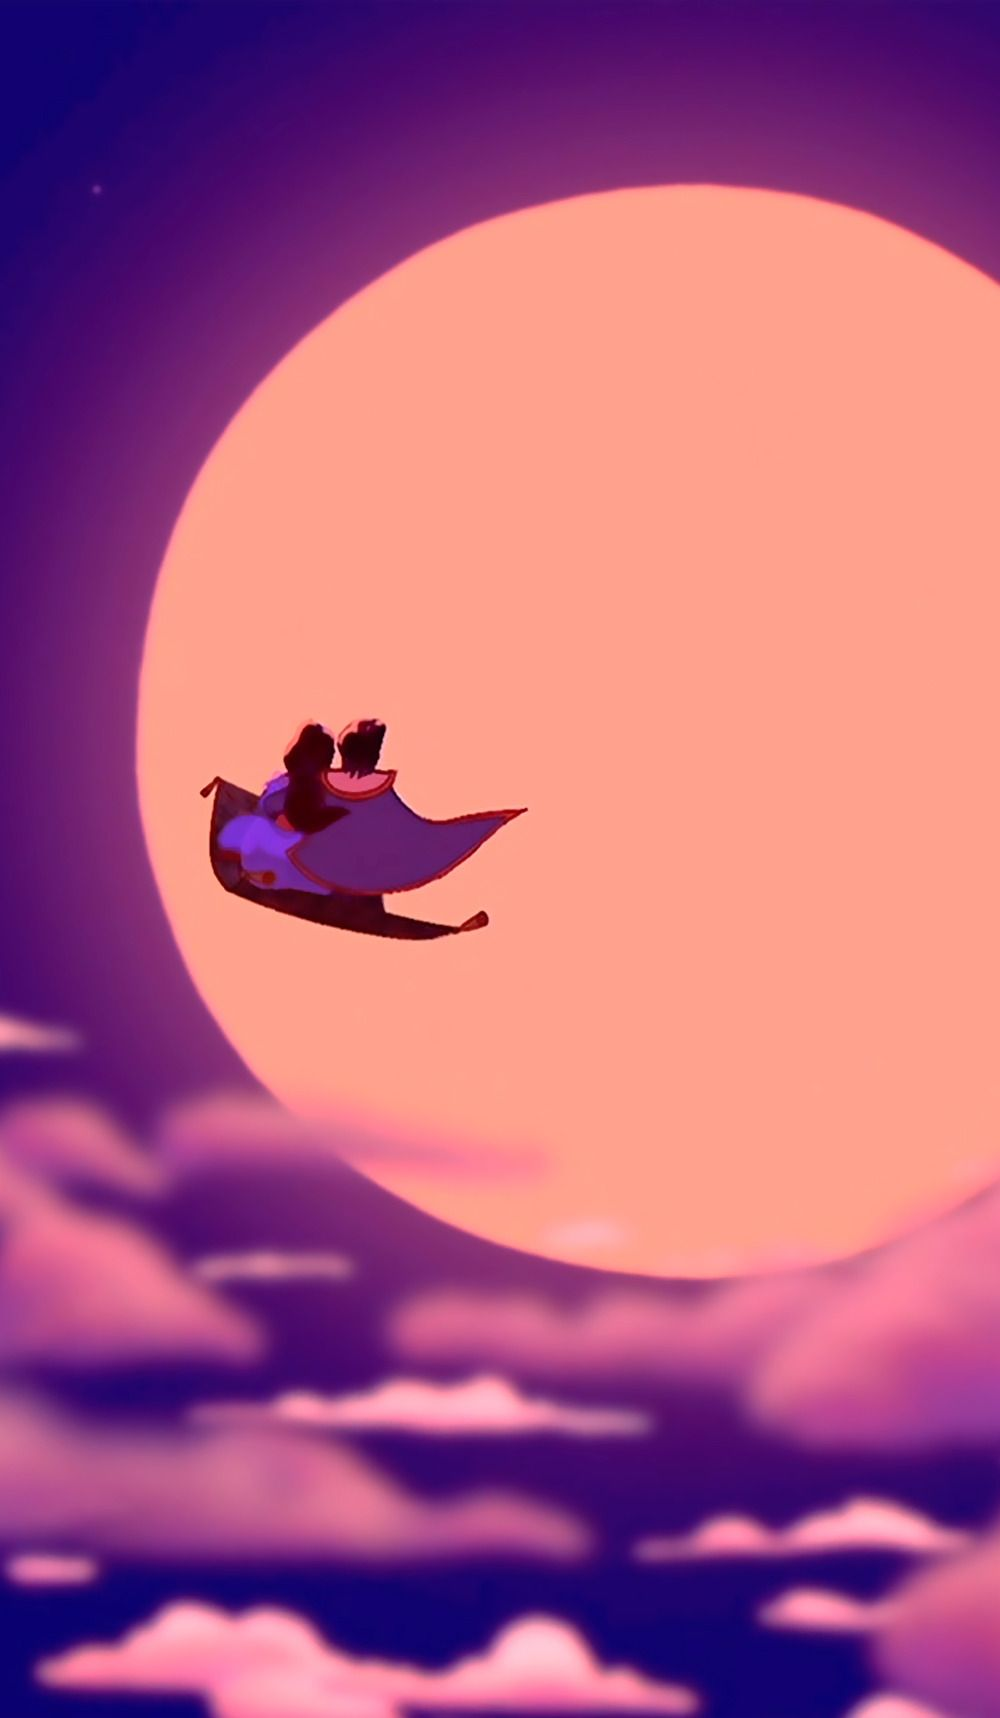 Aladdin Wallpapers 32 Images Dodowallpaper